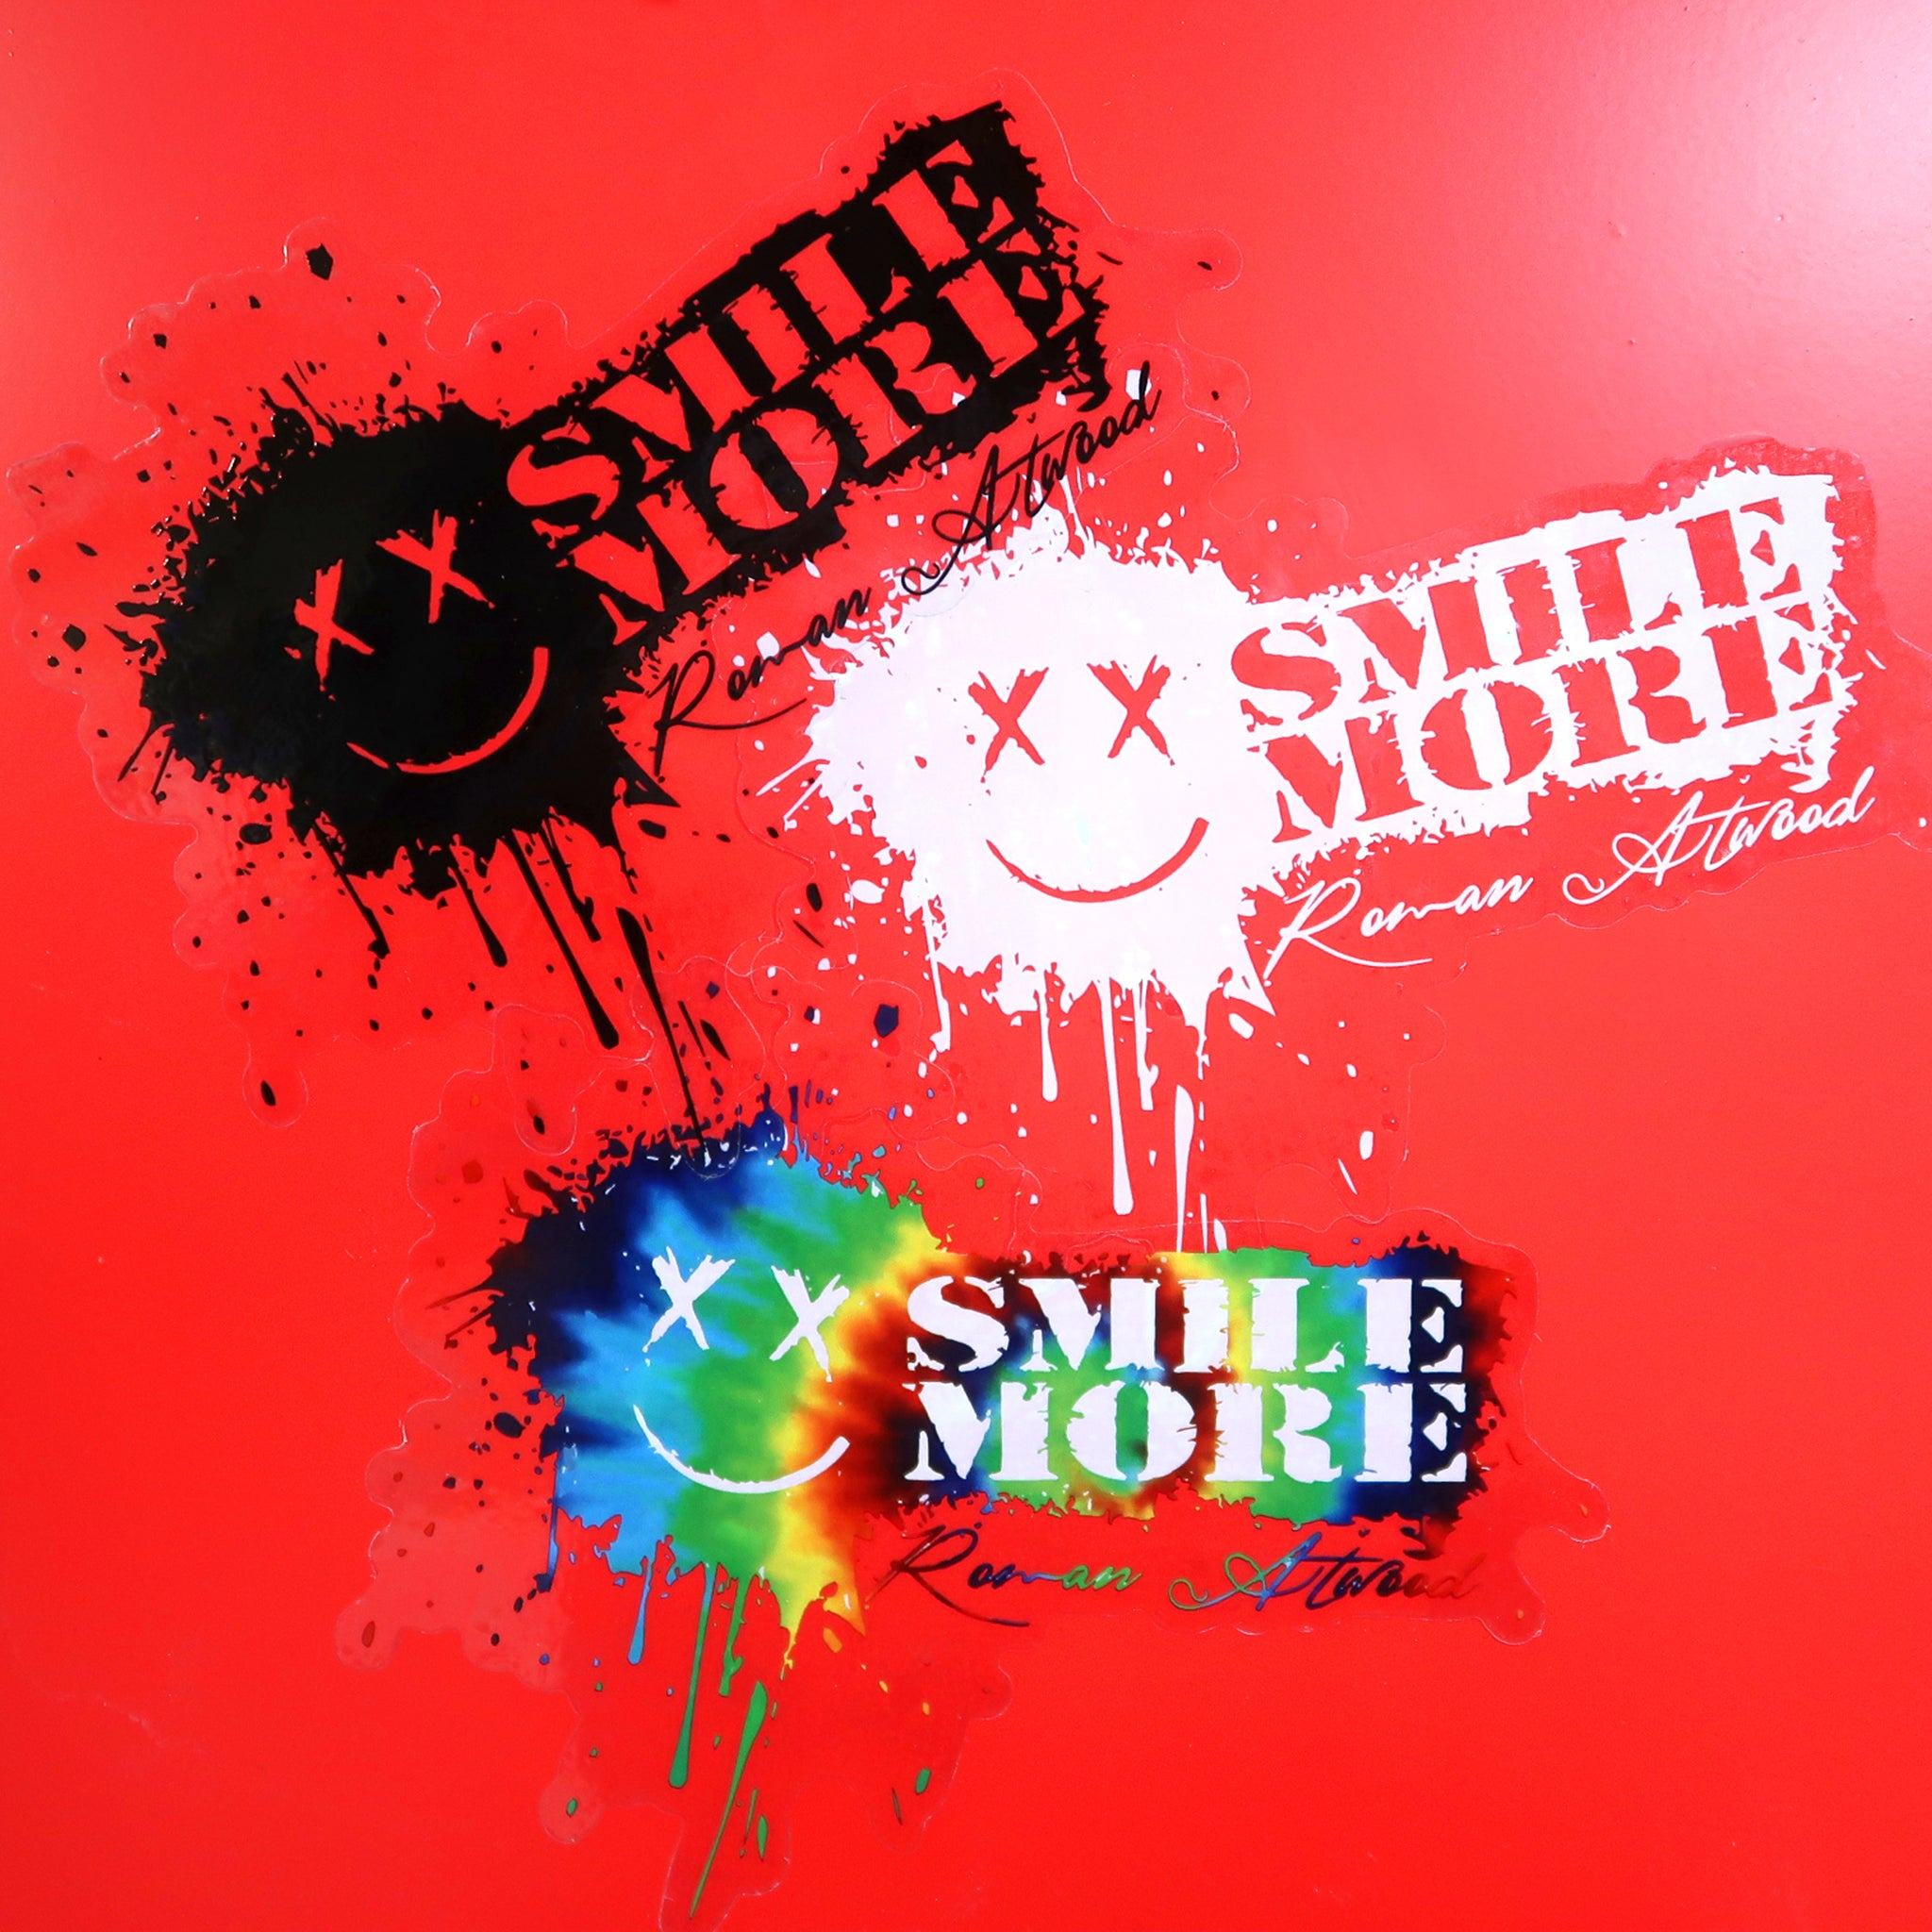 Smile More Splatter Sticker